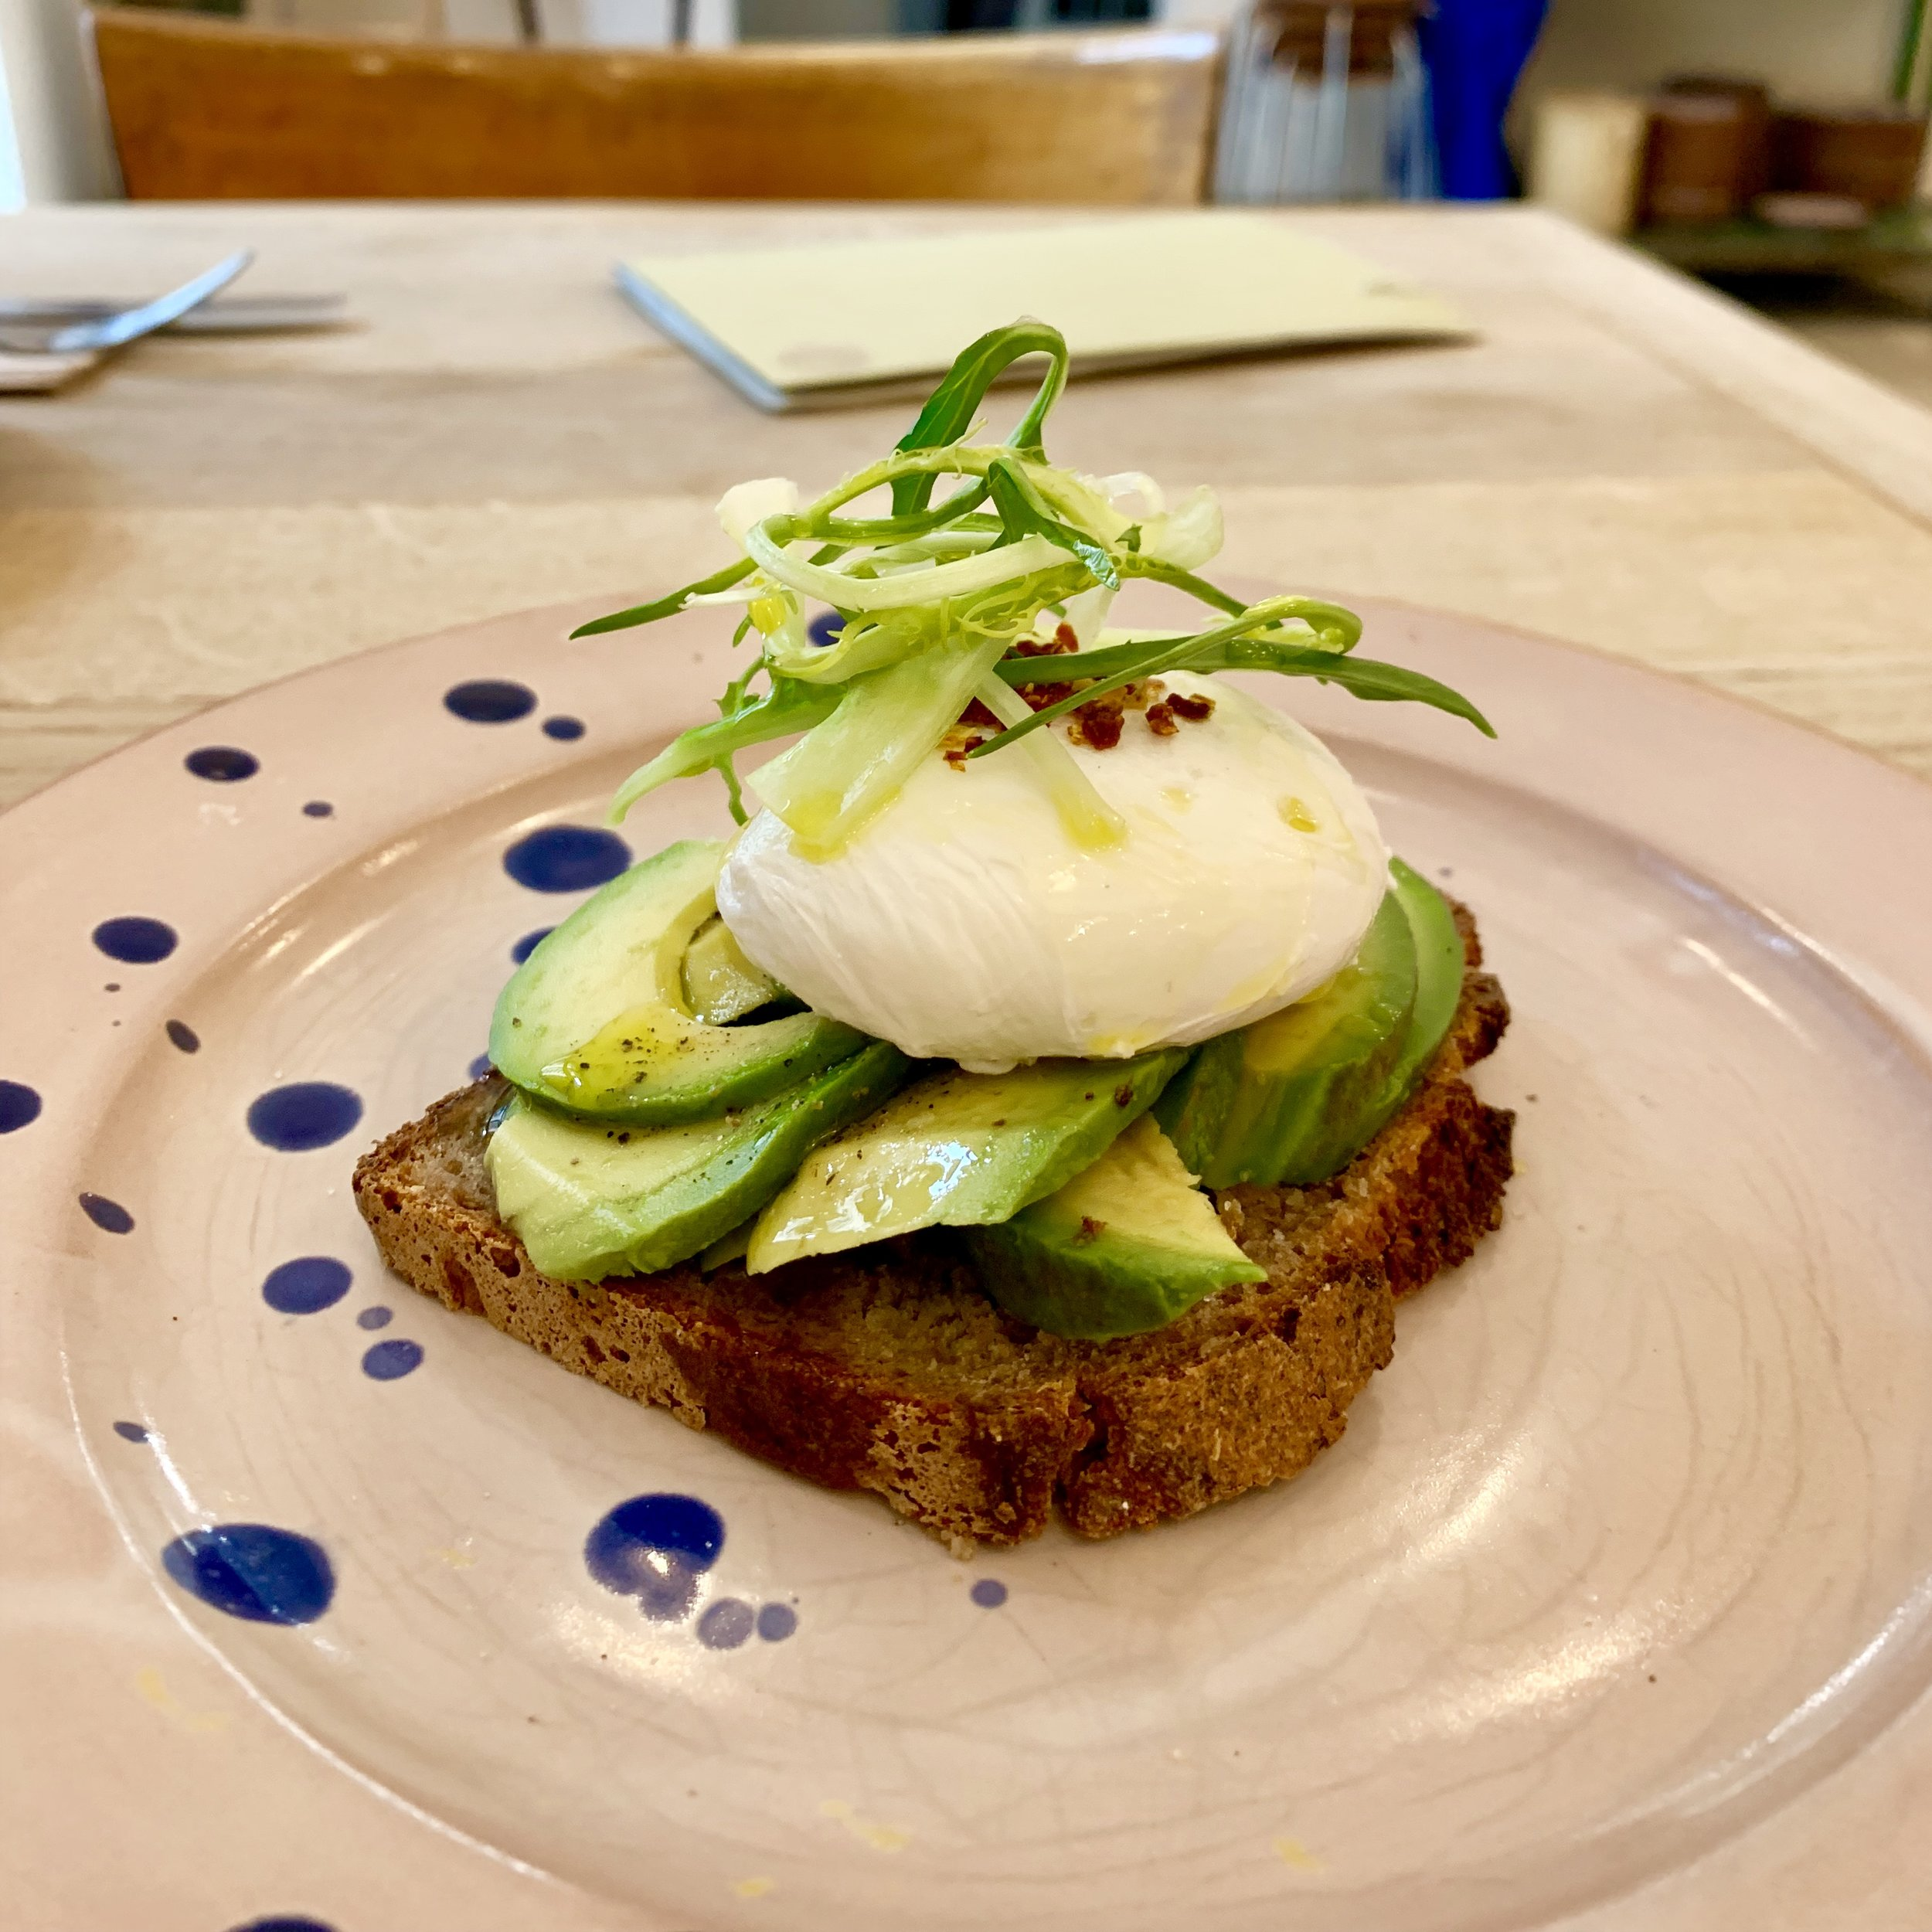 Avocado on rye + poached egg and chilli